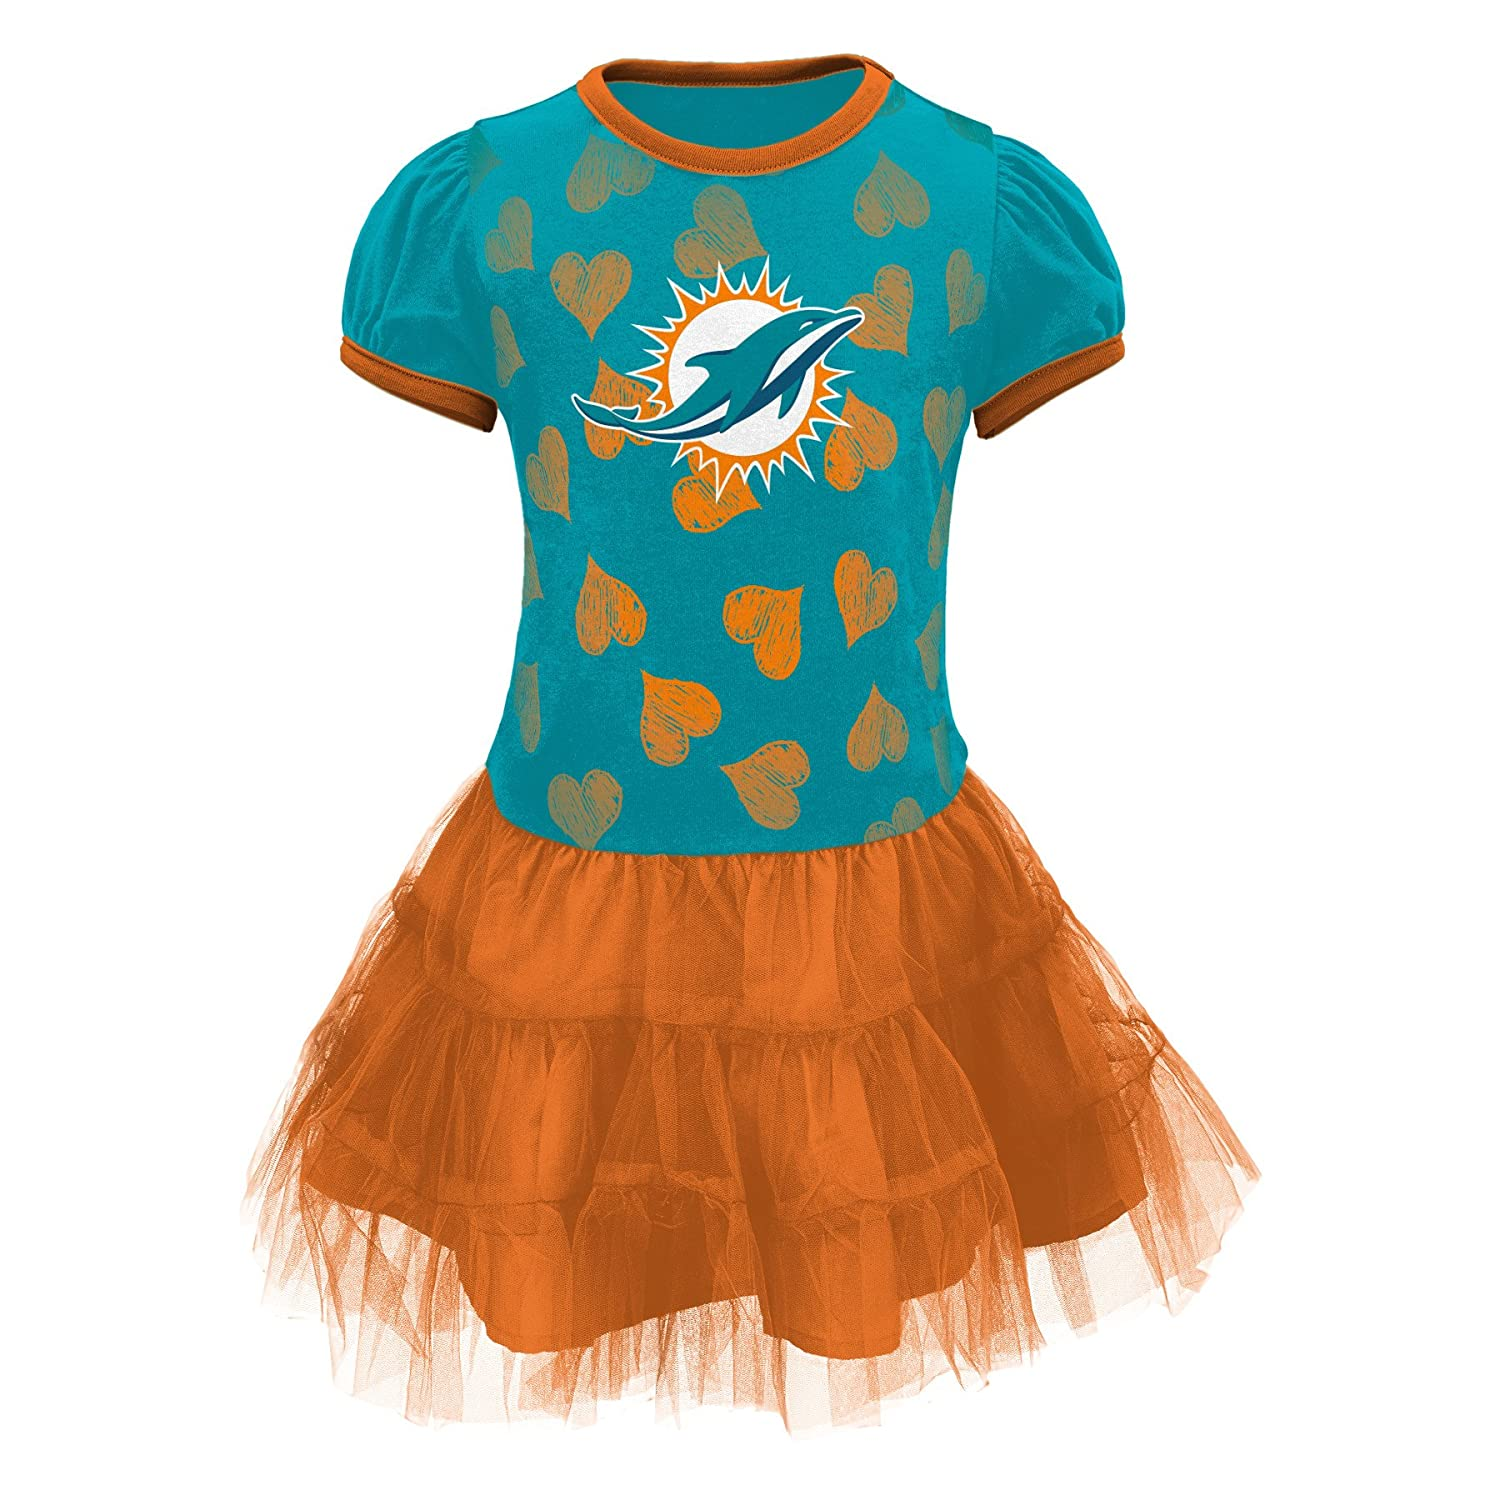 online store 599ca 0793c Amazon.com : Outerstuff NFL Miami Dolphins Love to Dance ...